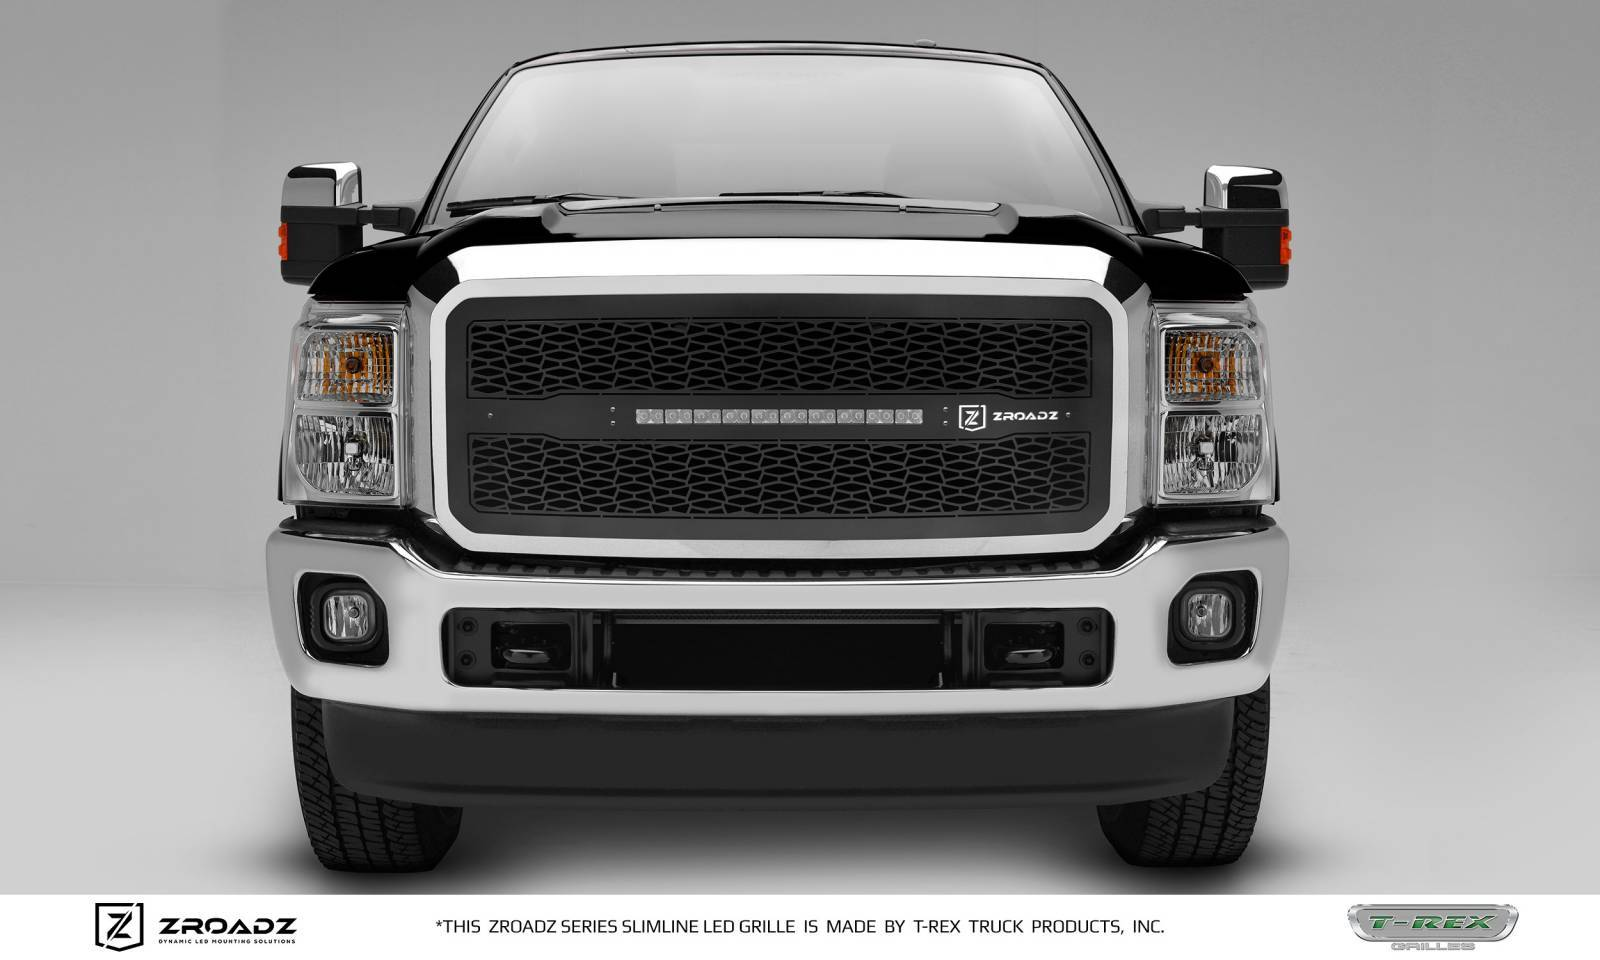 T-REX Ford F250 / F350 Super Duty - ZROADZ Series - Main Insert - Grille w/ One 20 Inch Slim Line Single Row LED Light Bar - Includes Universal Wiring Harness - Part# Z315461